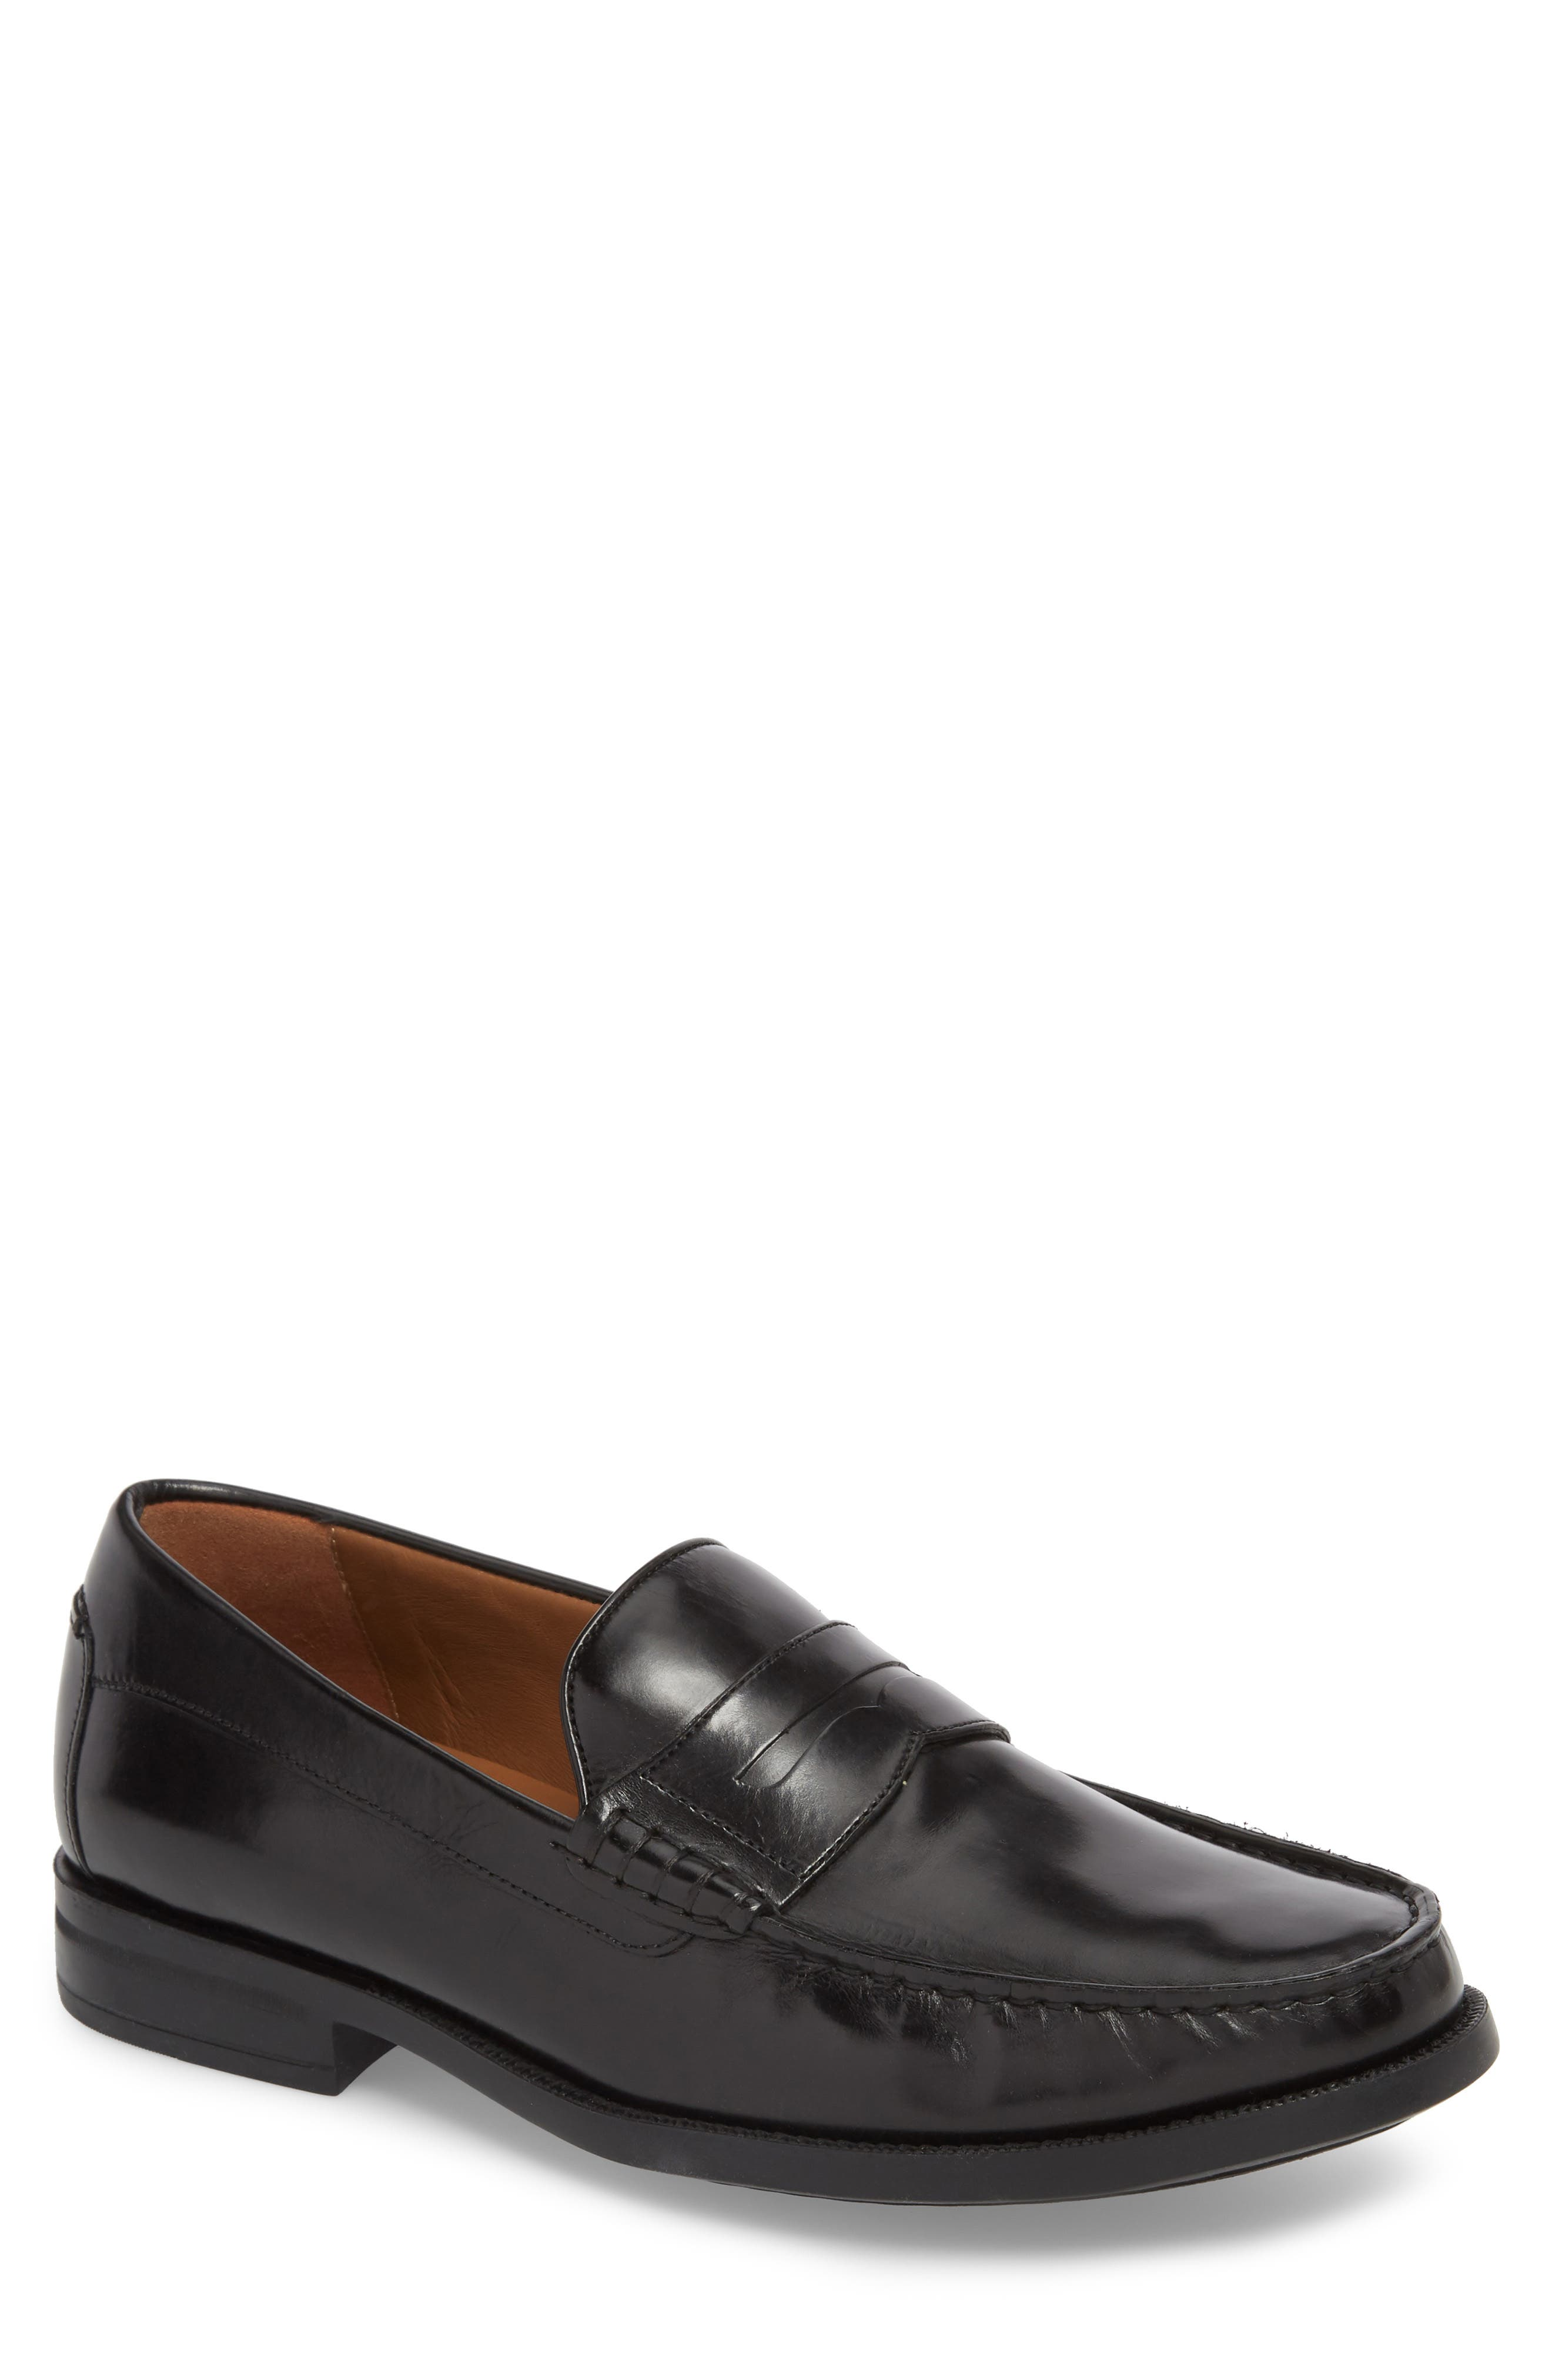 Chadwell Penny Loafer,                             Main thumbnail 1, color,                             BLACK LEATHER